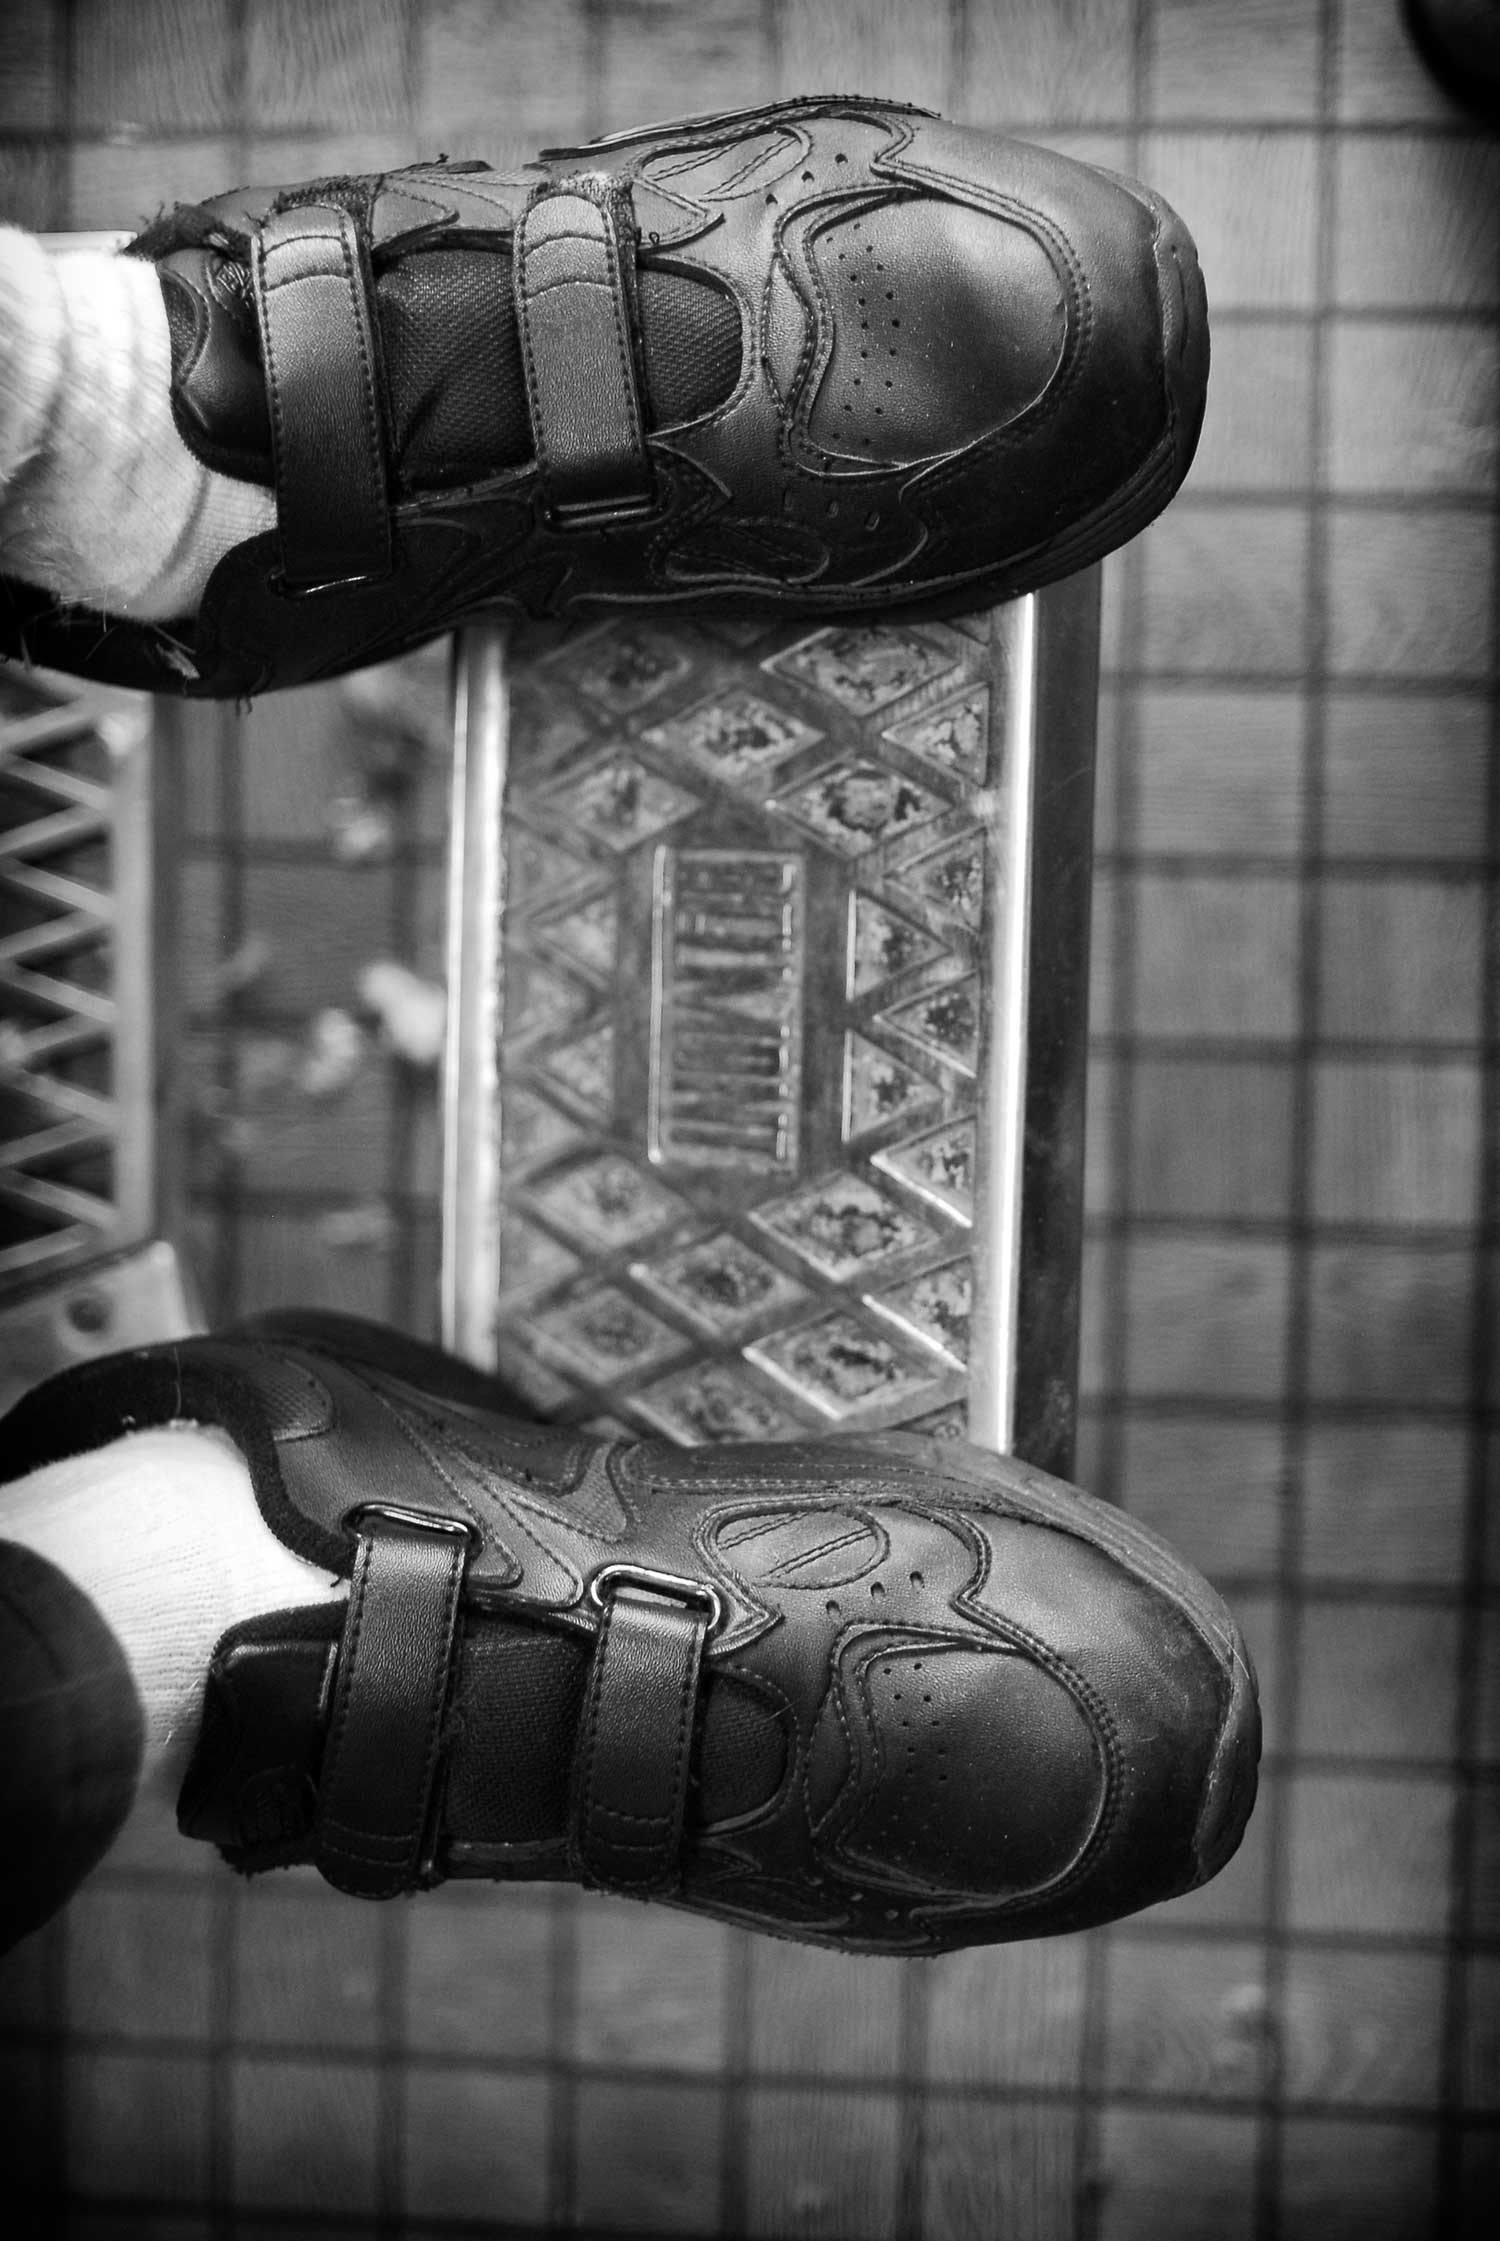 Granville Cornett's shoes reflect the classic style of Ray Beeler's barber chair. Photo By Samantha Thornton. - 2008